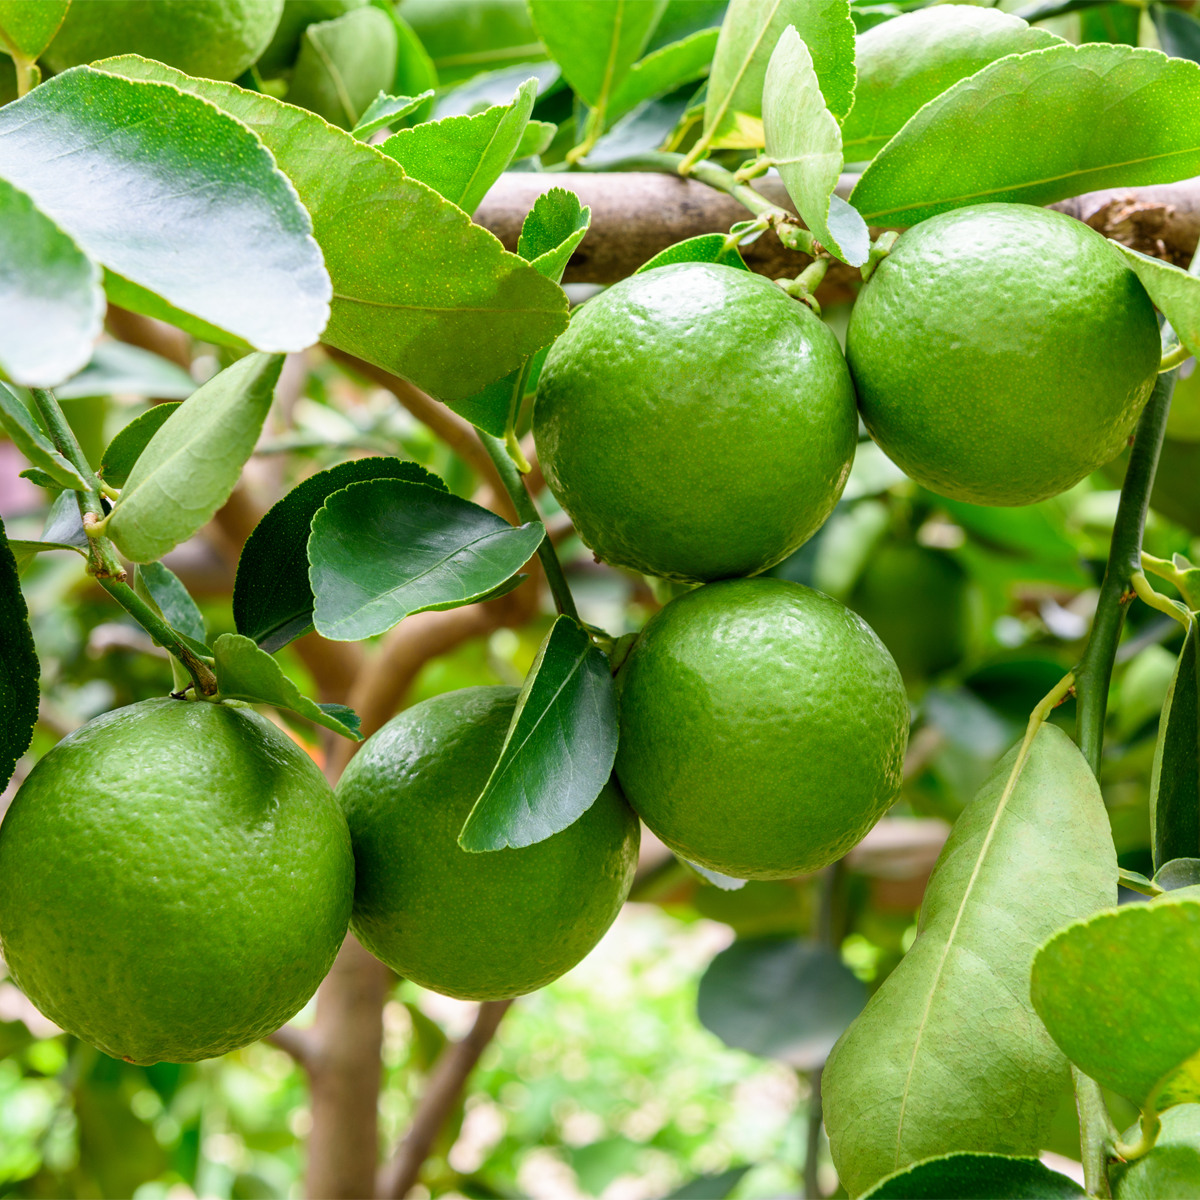 Persian_Bearss_Lime_Tree_Drop_Shipper_Grow_Scripts_Size_1_Gallon_Age_1_Year